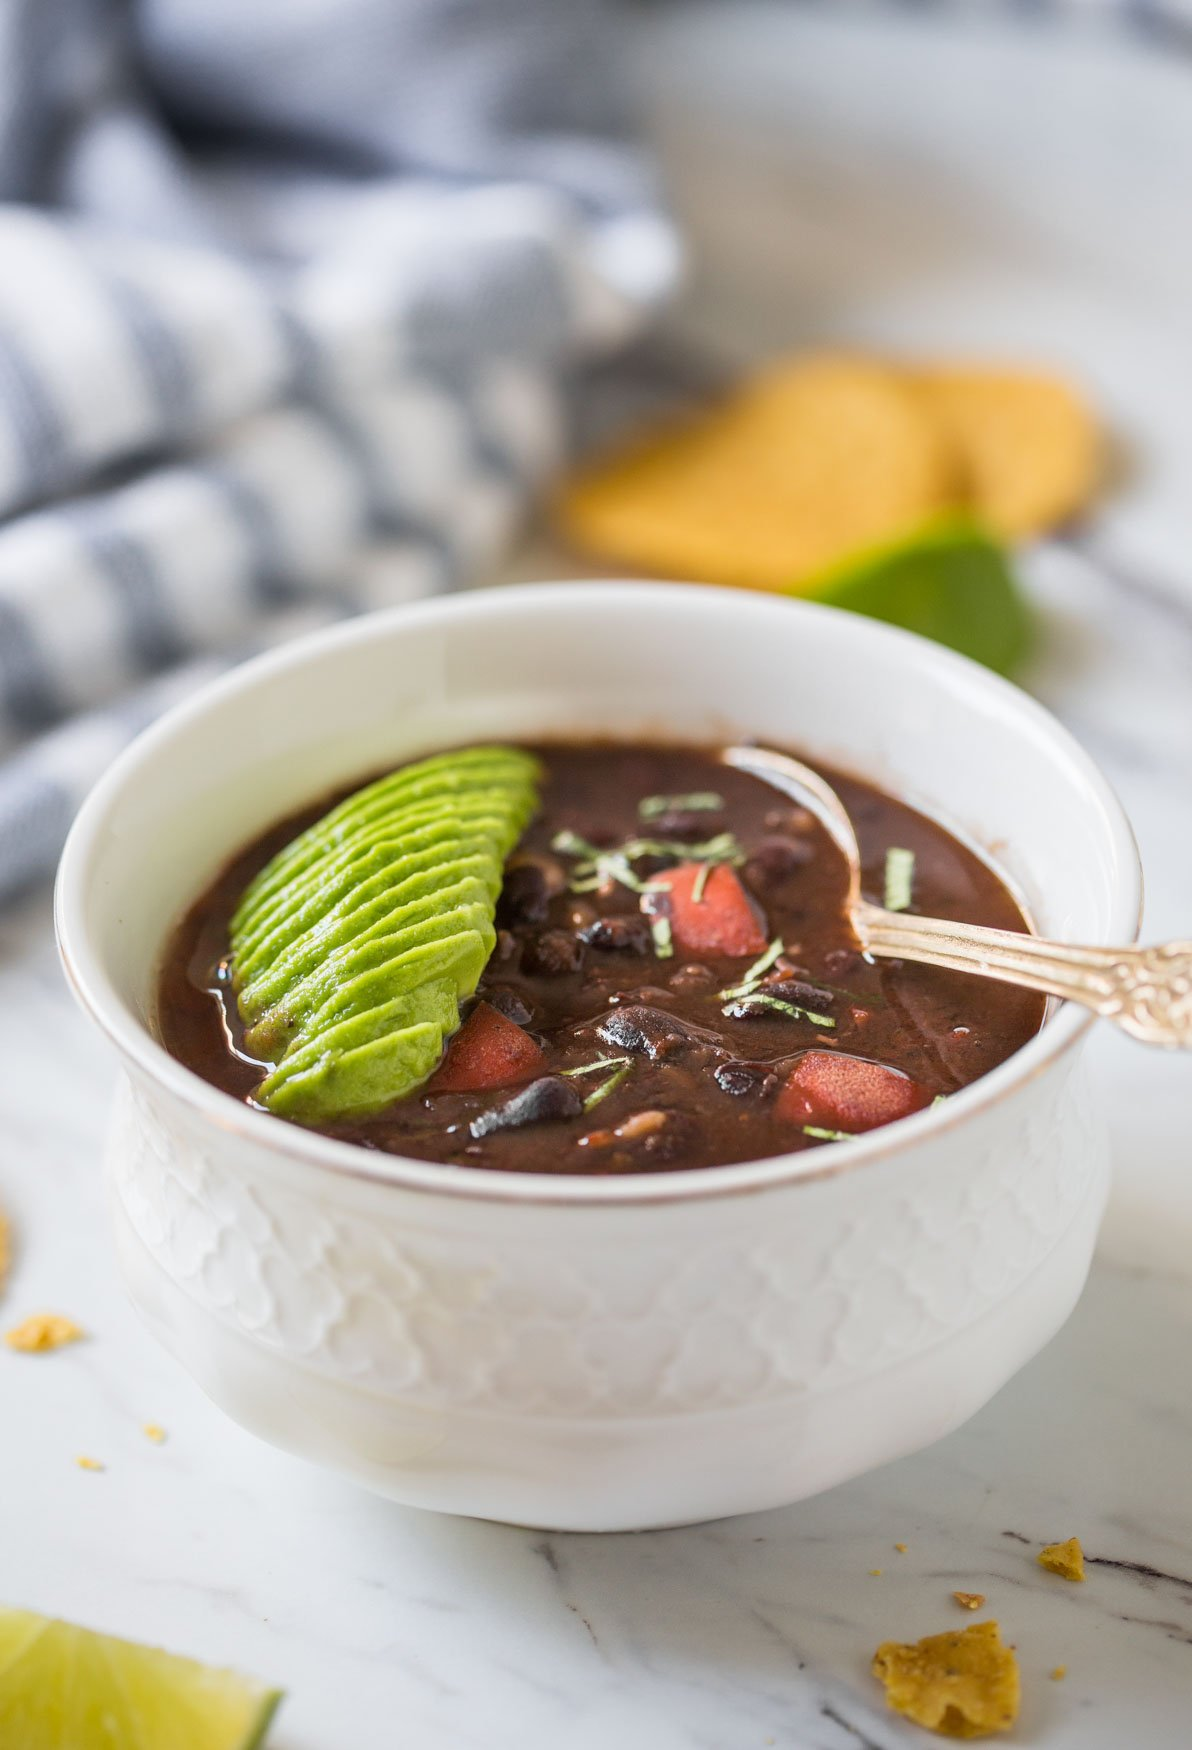 Instant pot black bean soup with dried beans - Follow this easy and healthy recipe for quick one pot dinner or lunch. #instantpot #pressurecooker #blackbeans #soup #vegan #glutenfree